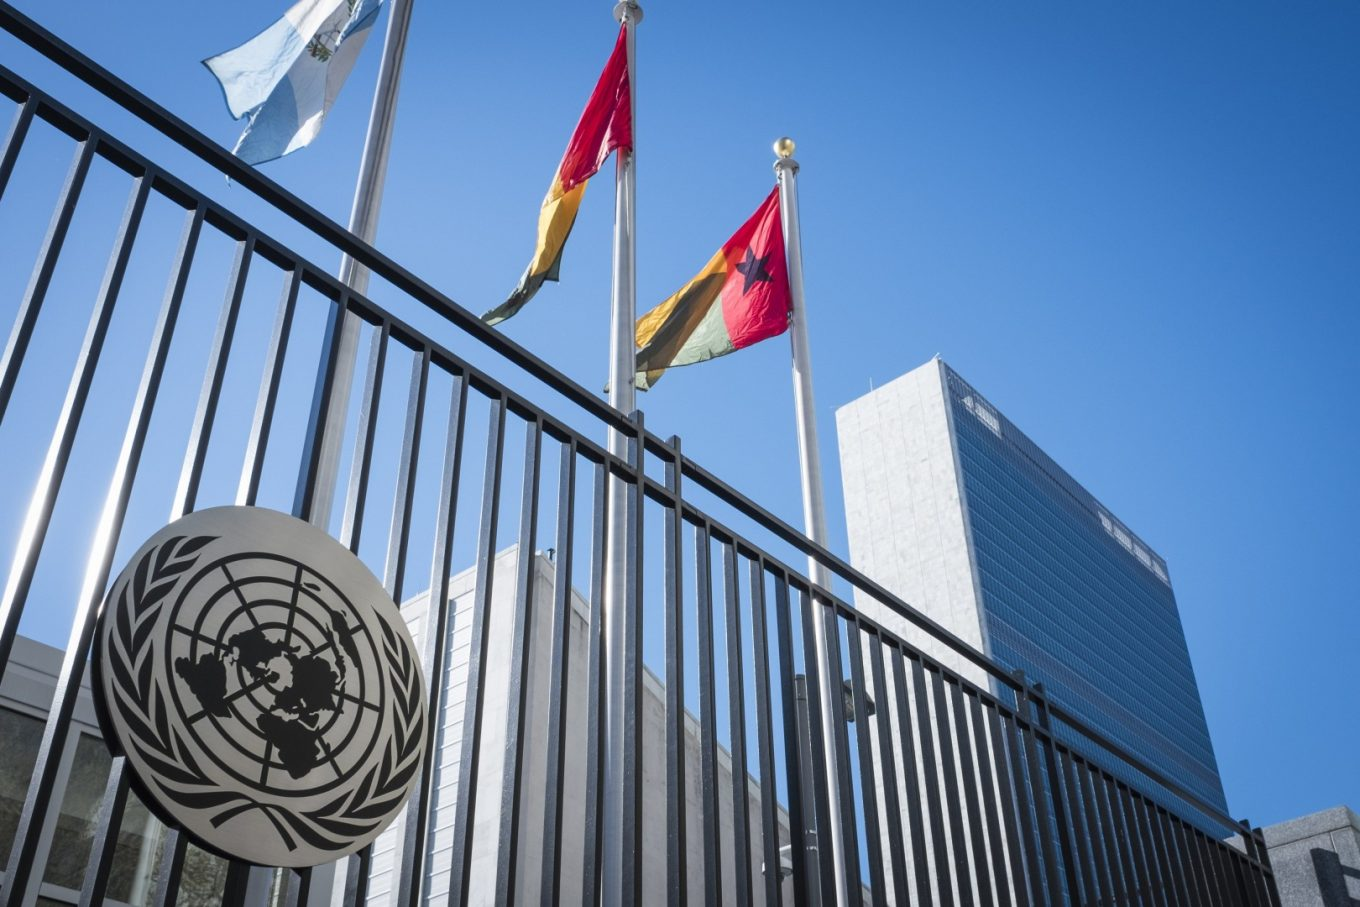 Un hq - Blockchain Startups and Projects in Alignment with the United Nations SDGs (Part 1)